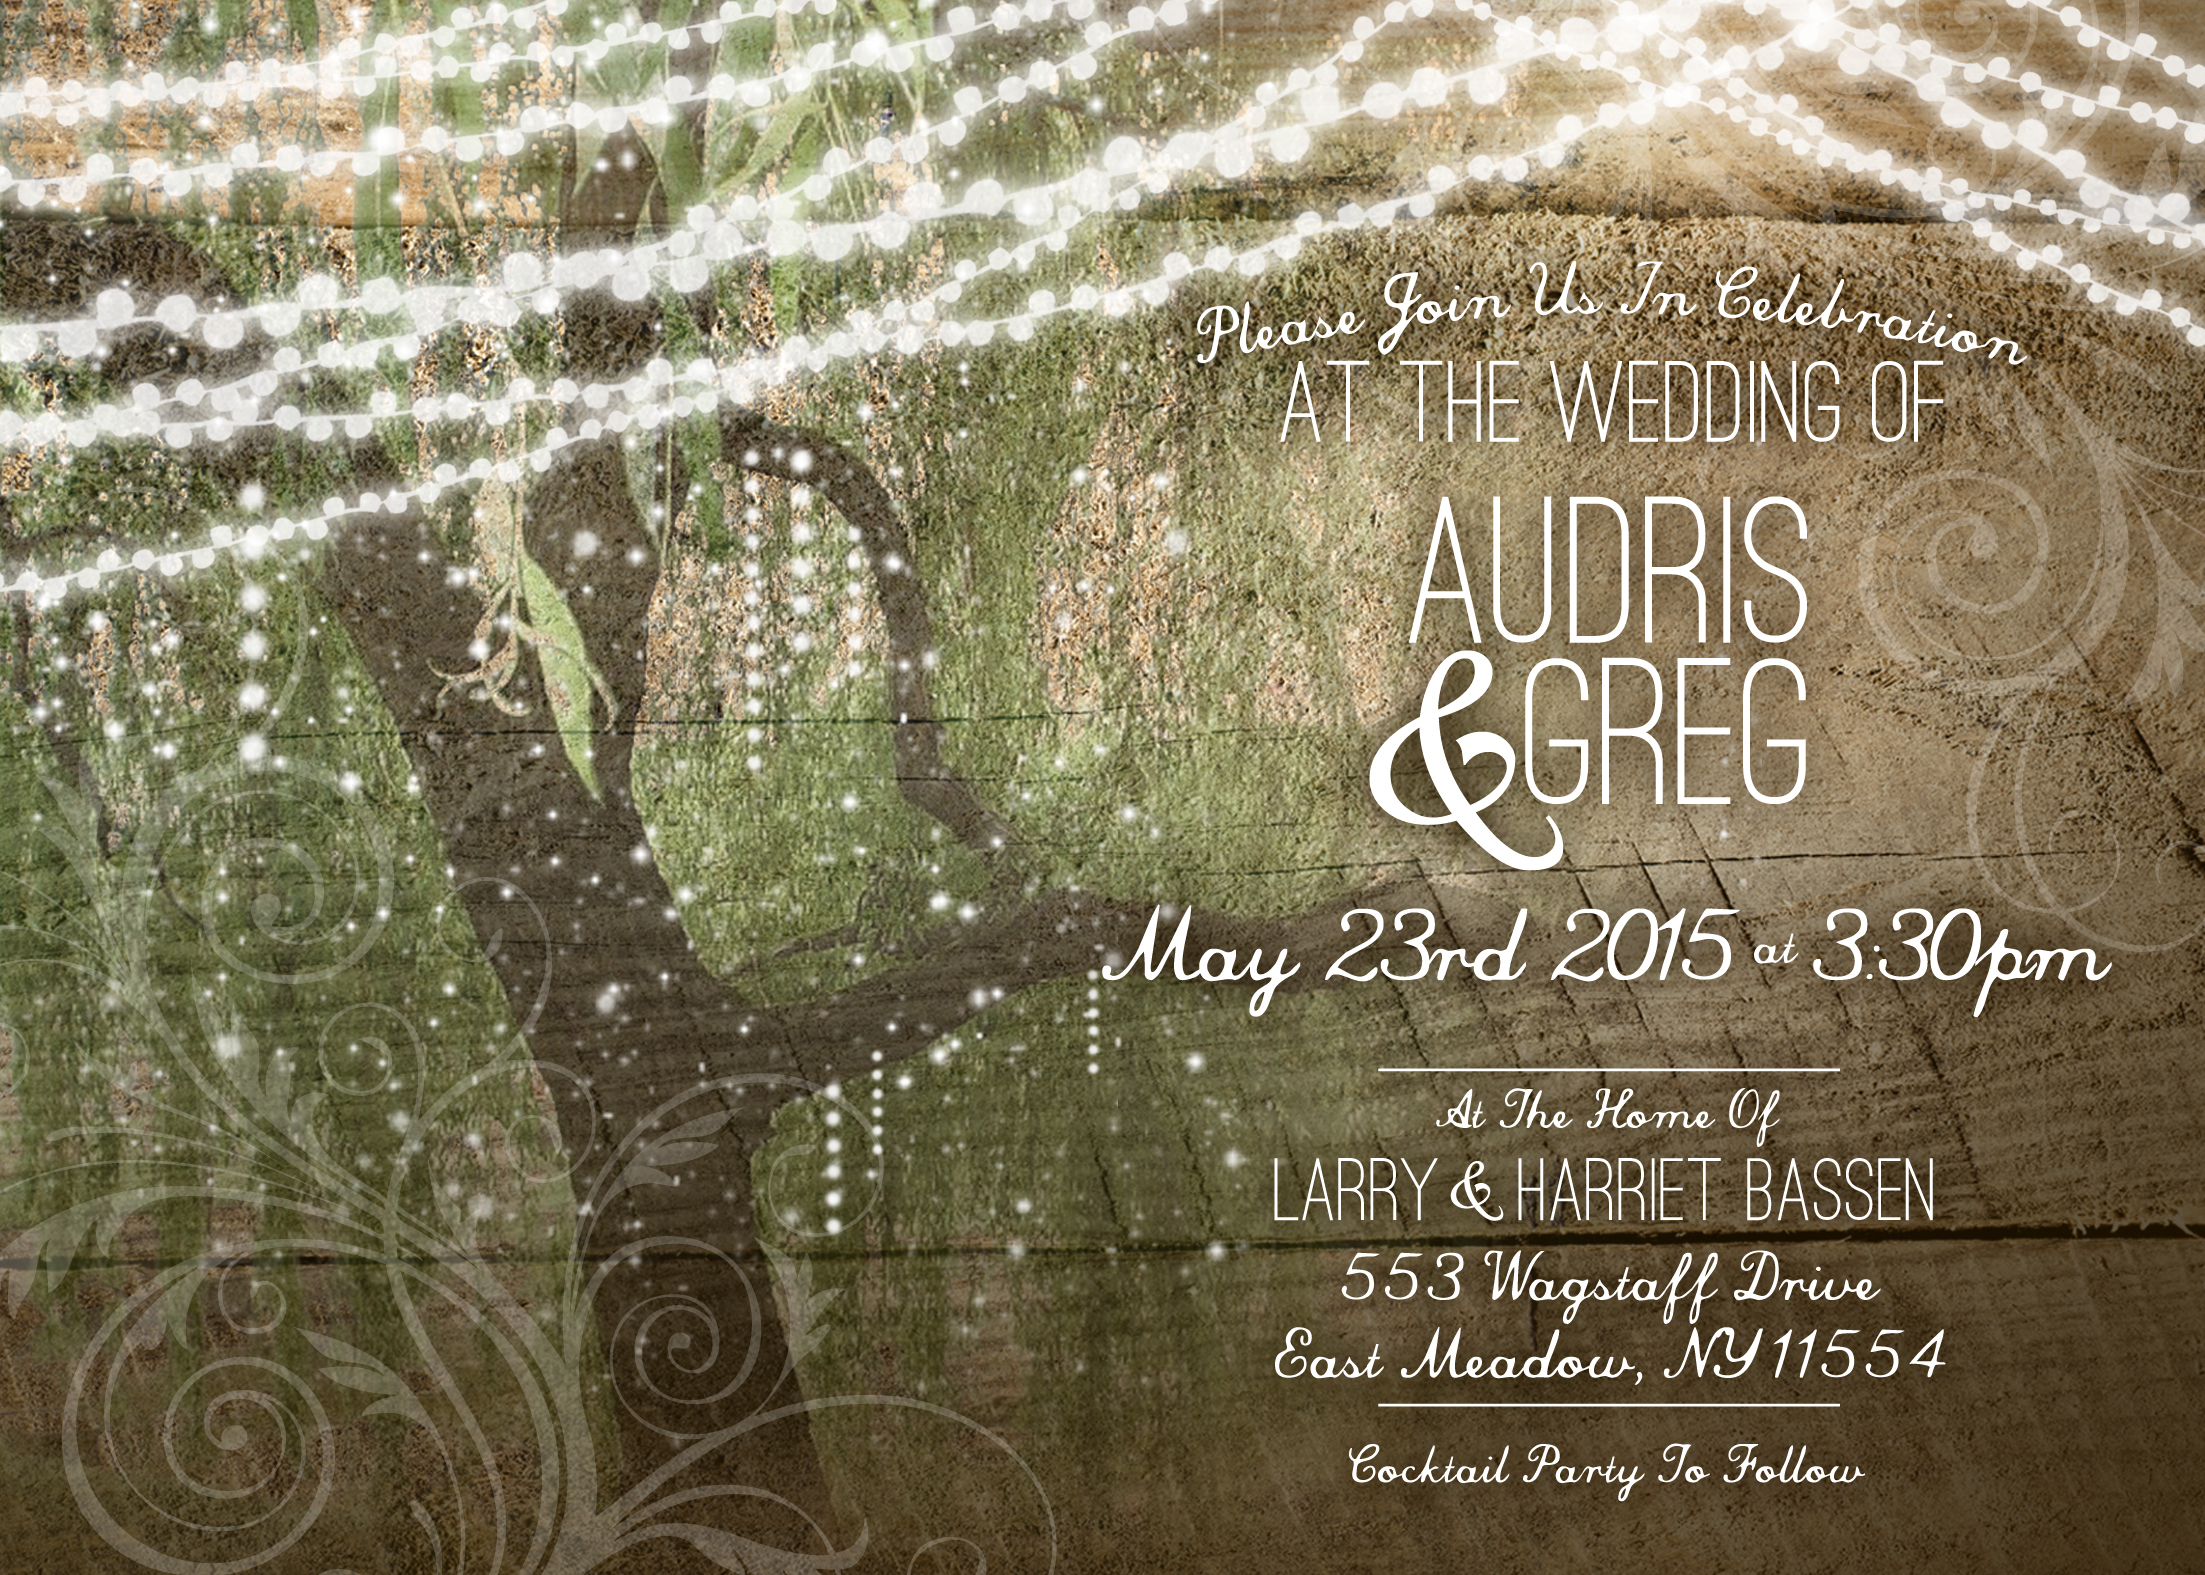 AUDRIS & GREG 5 23 15 MAIN INVITE 2.jpg